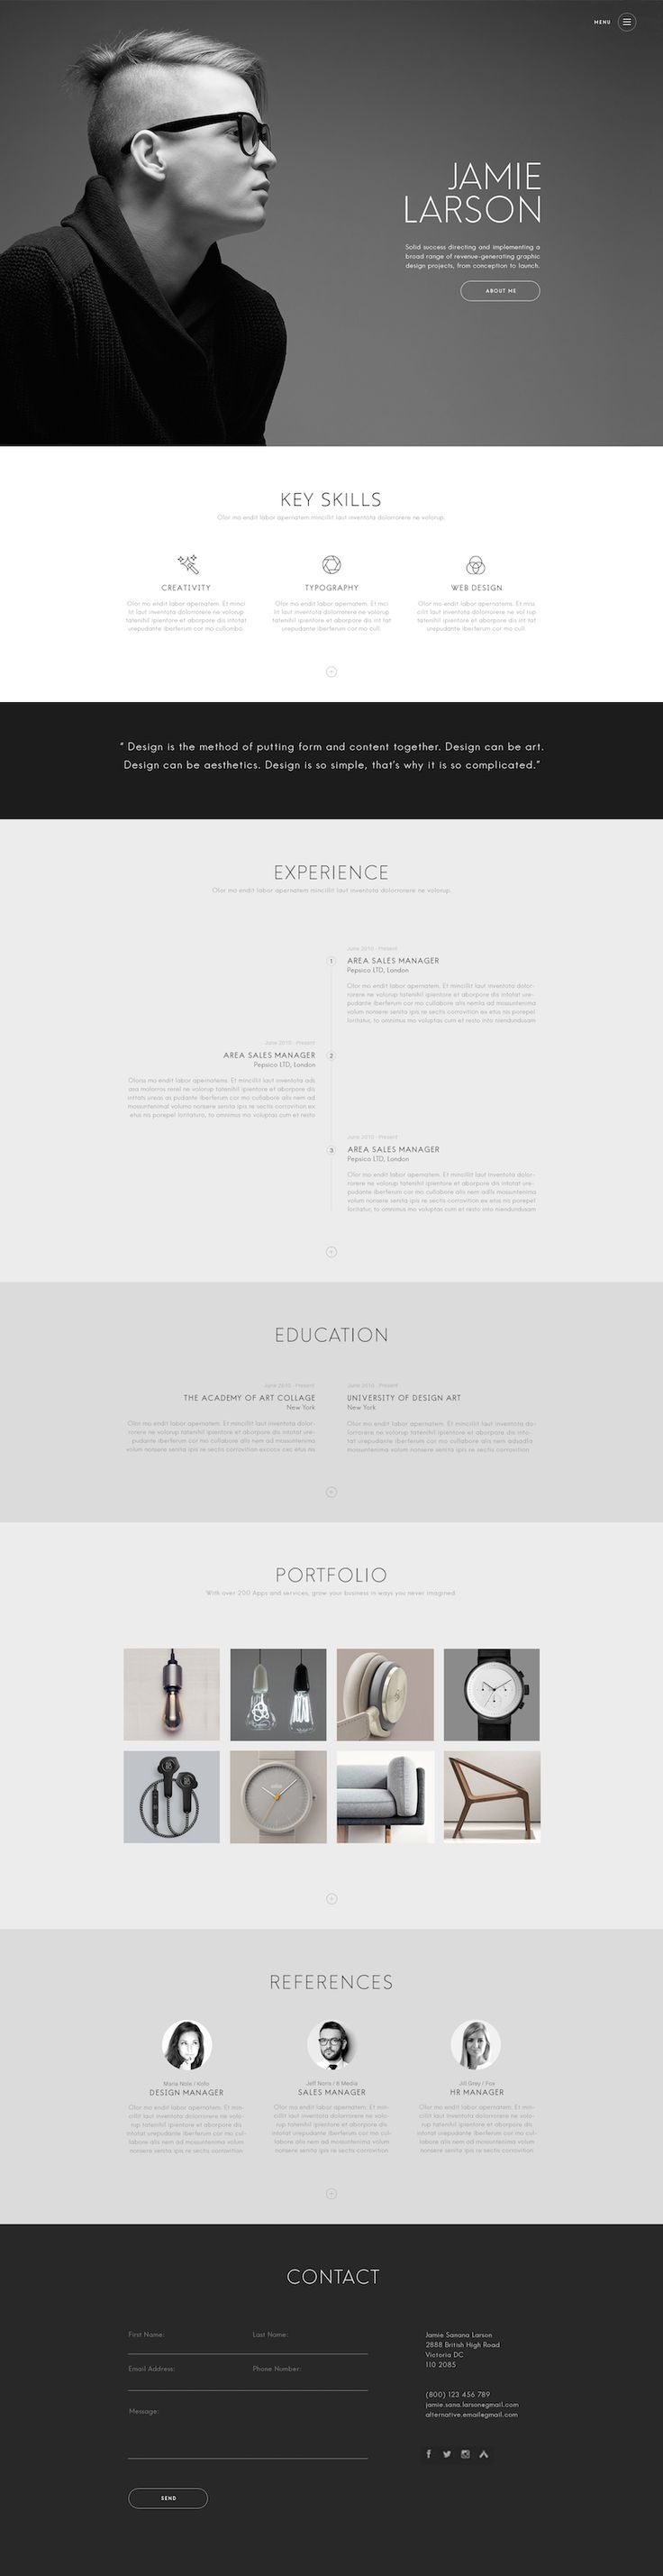 27 best images about modern resume templates on